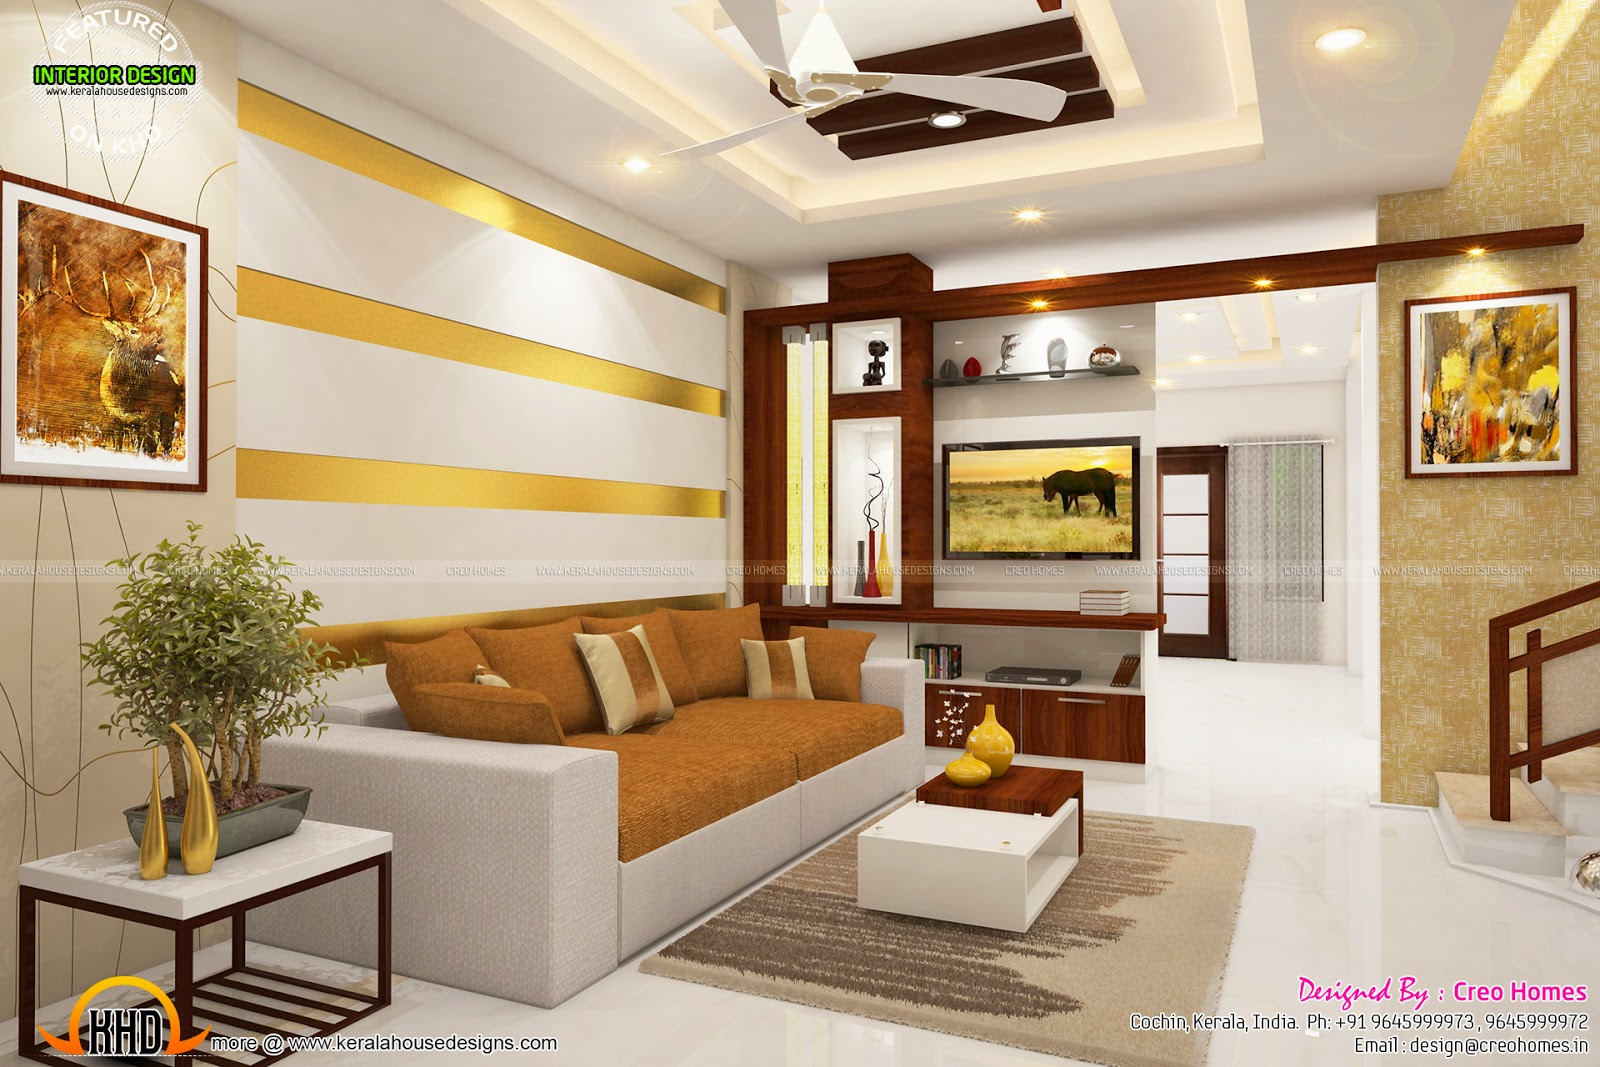 Total home interior solutions by creo homes kerala home for Living room design ideas kerala